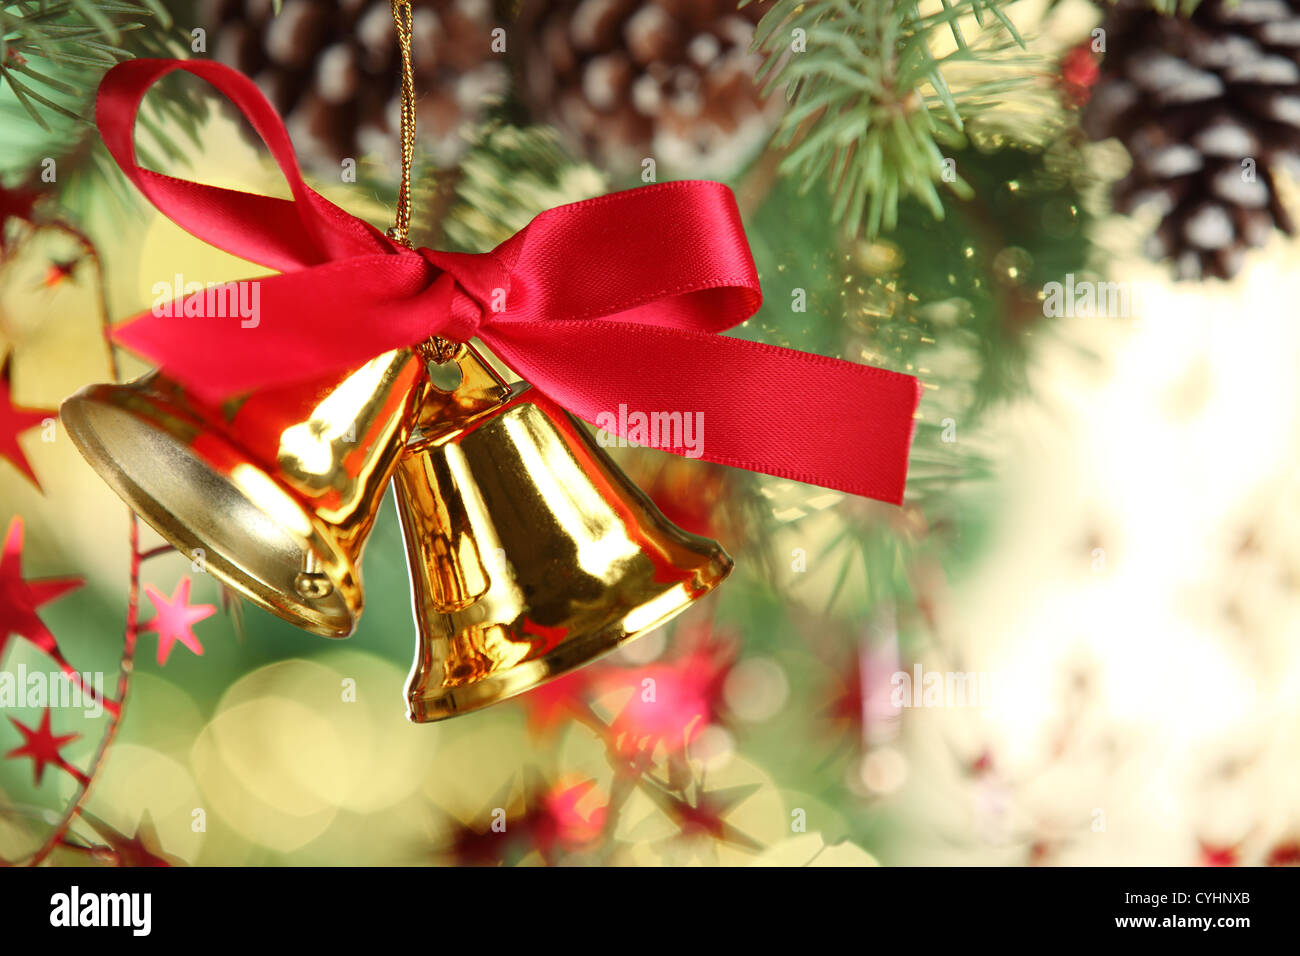 0e27e7549e7 Jingle Bell Stock Photos   Jingle Bell Stock Images - Alamy